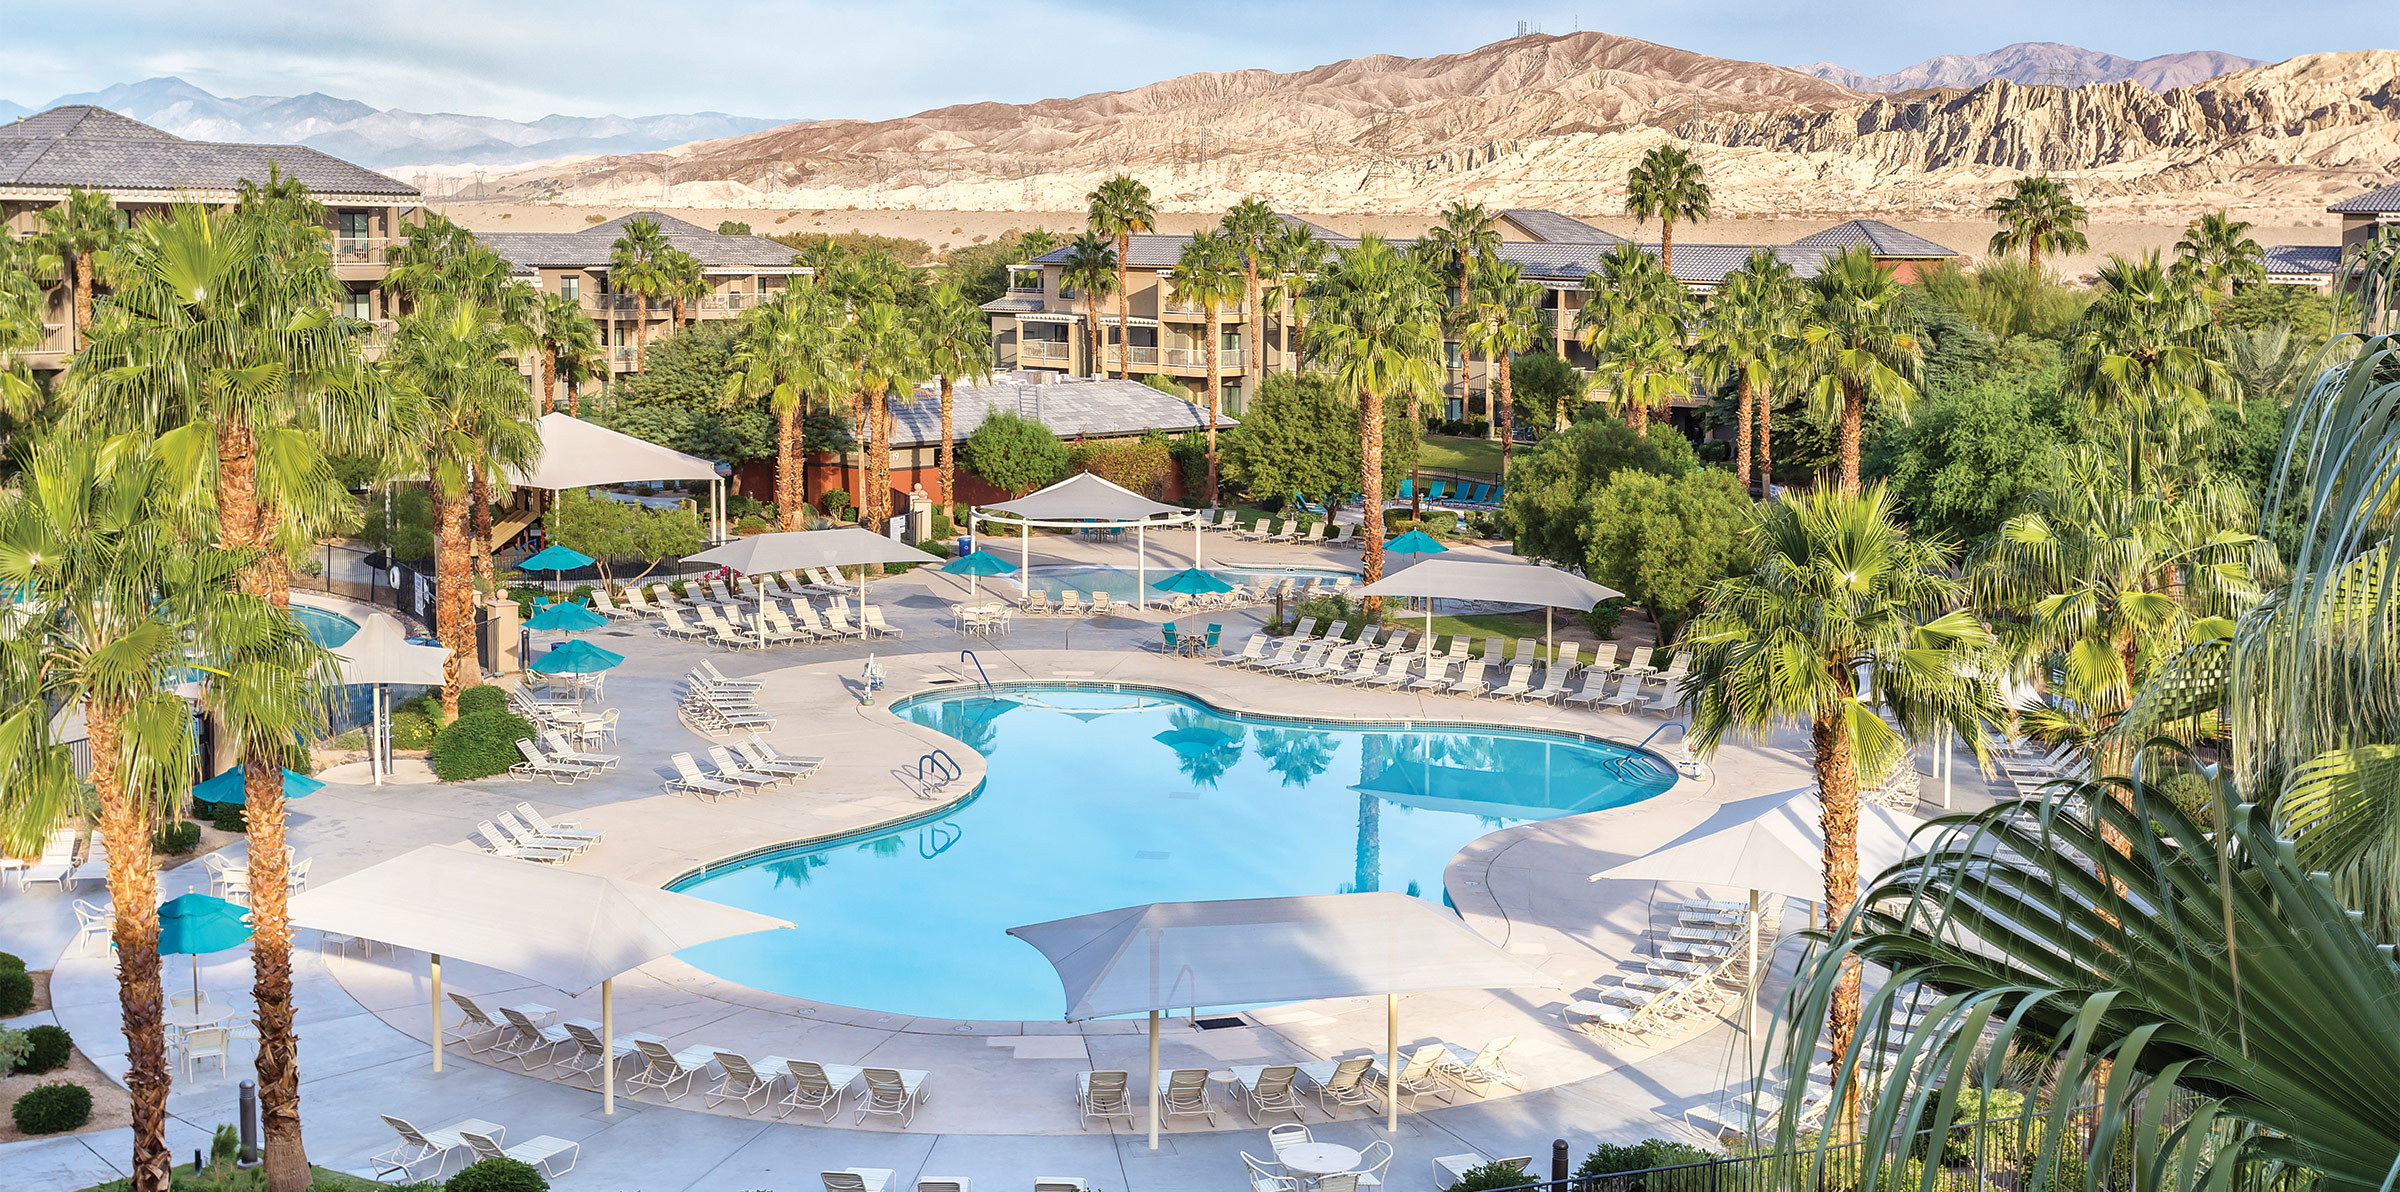 Apartment 2 Bedroom 2 Bath In Indio  CA   Palm Springs  5 miles from COACHELLA photo 18634356